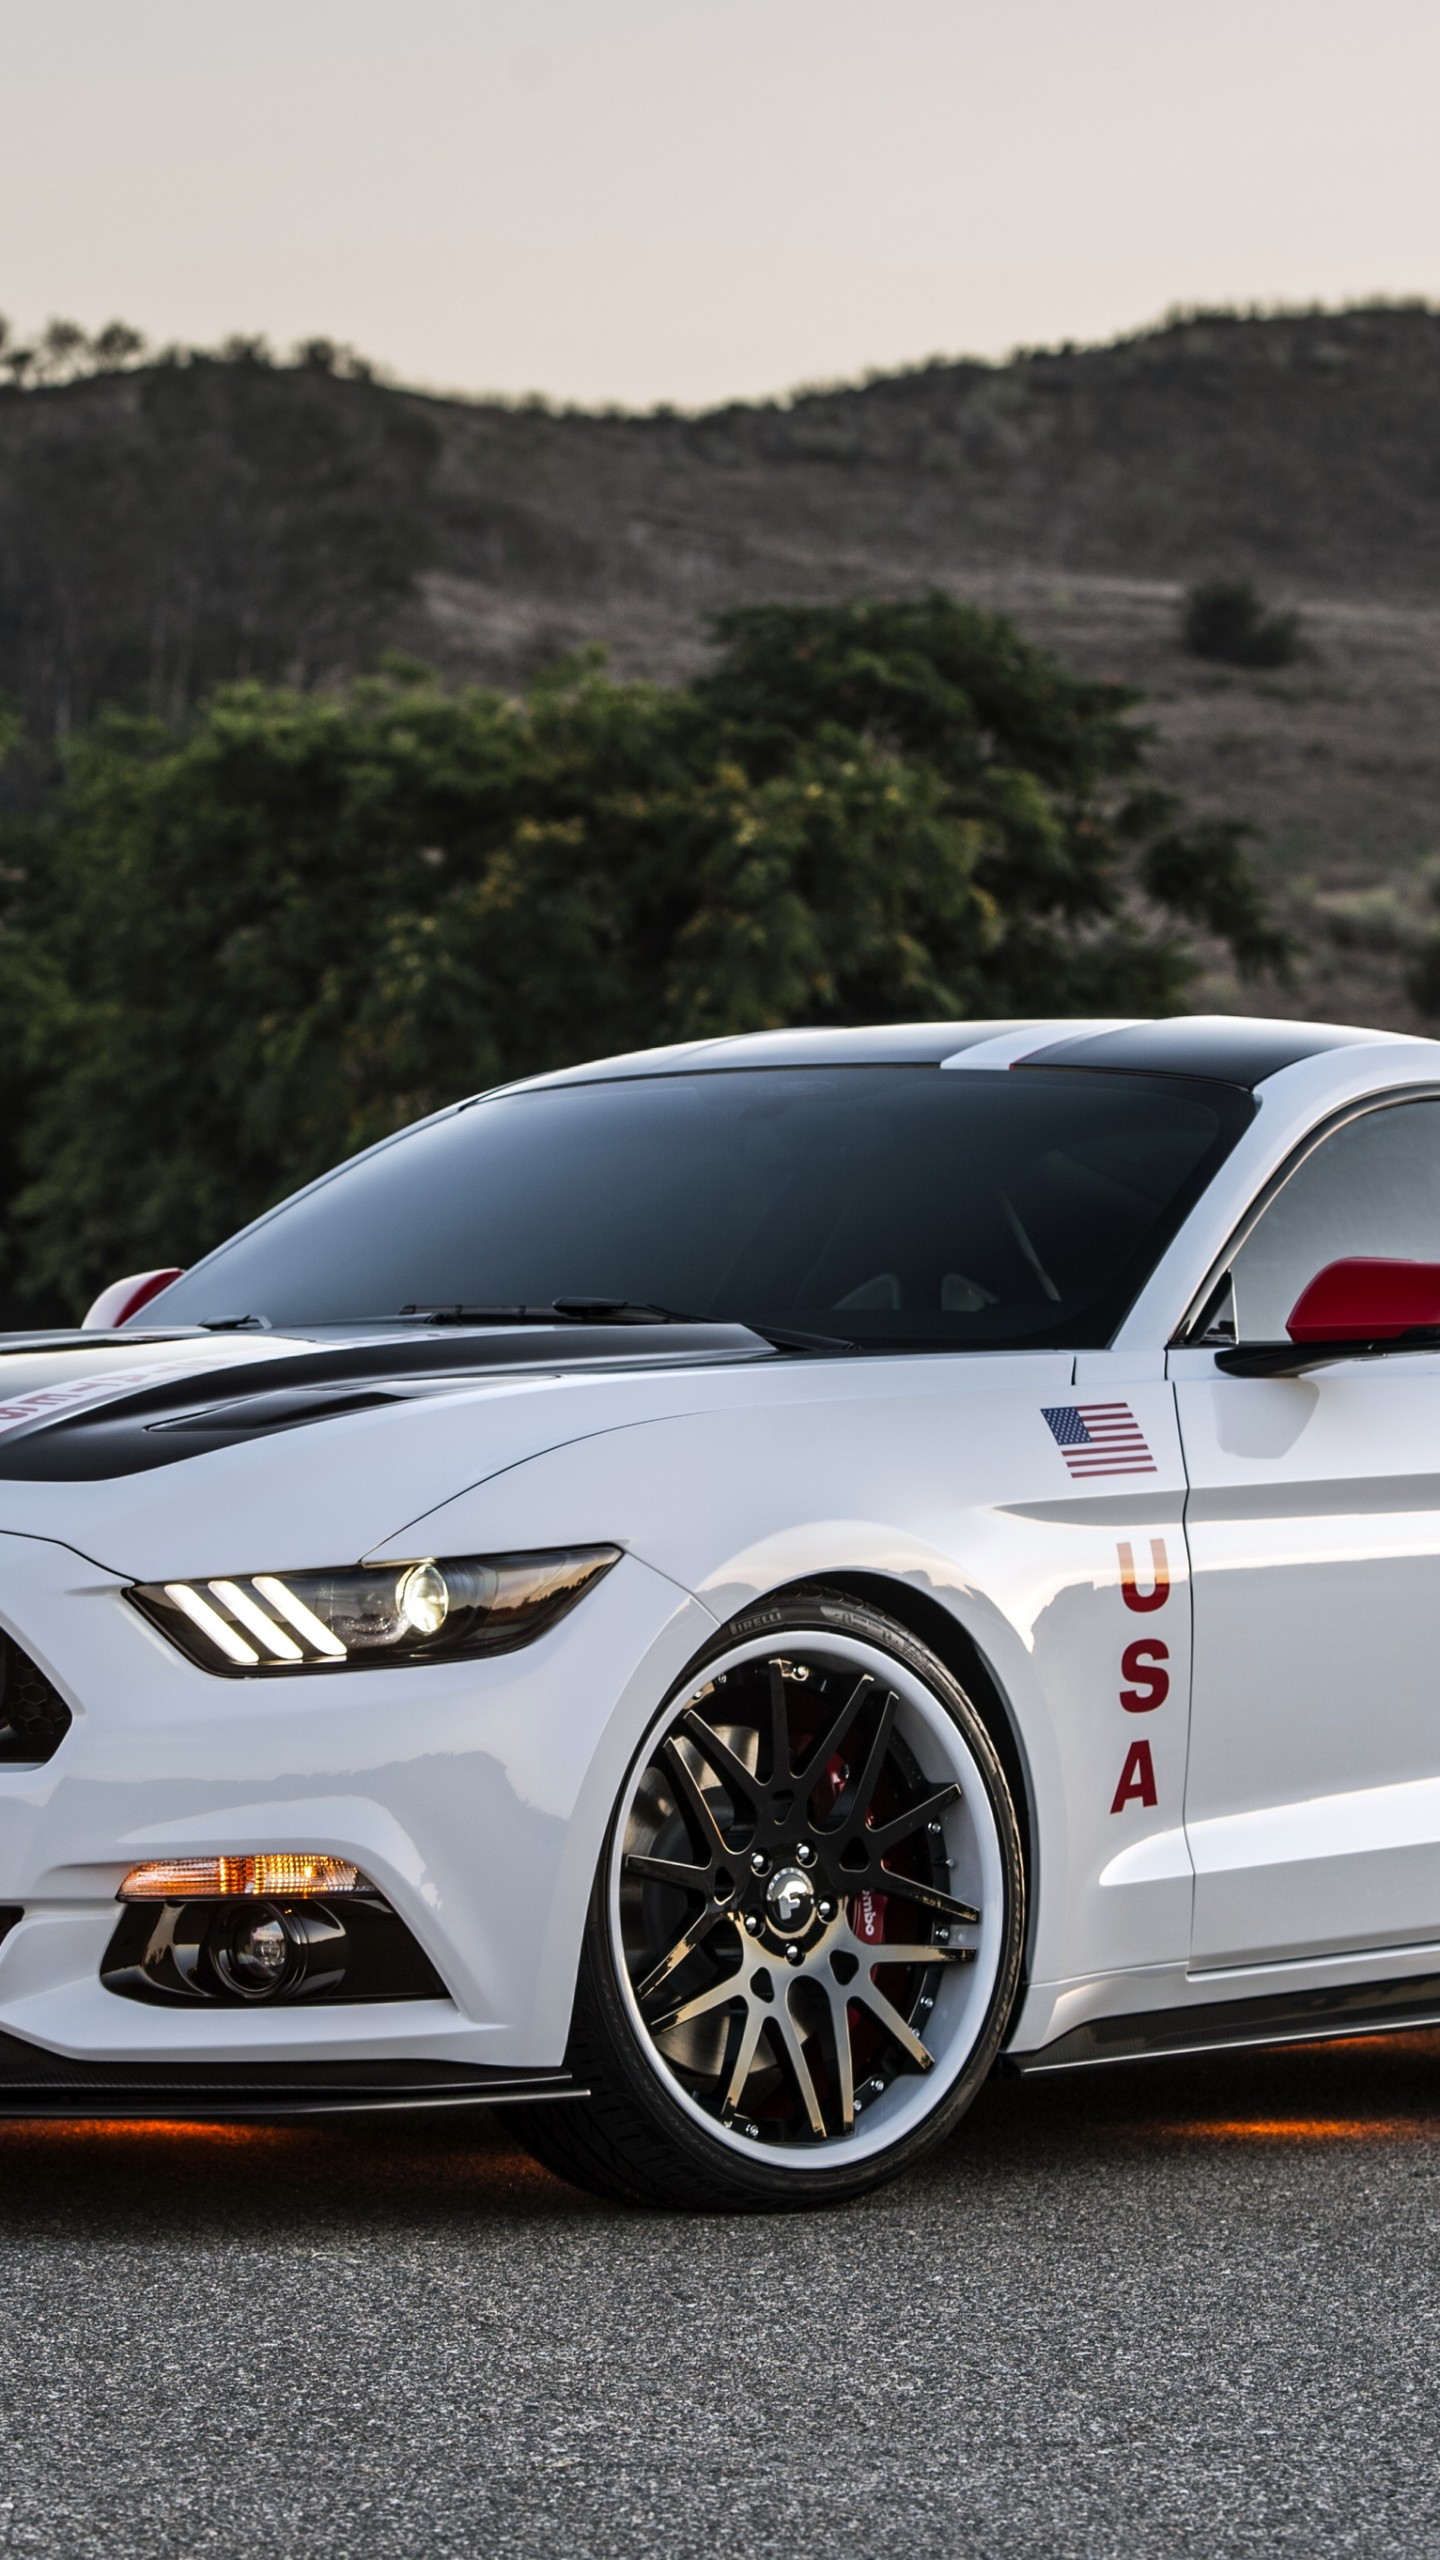 Best Luxury Car Wallpapers Wallpaper Ford Mustang Apollo Edition Mustang White